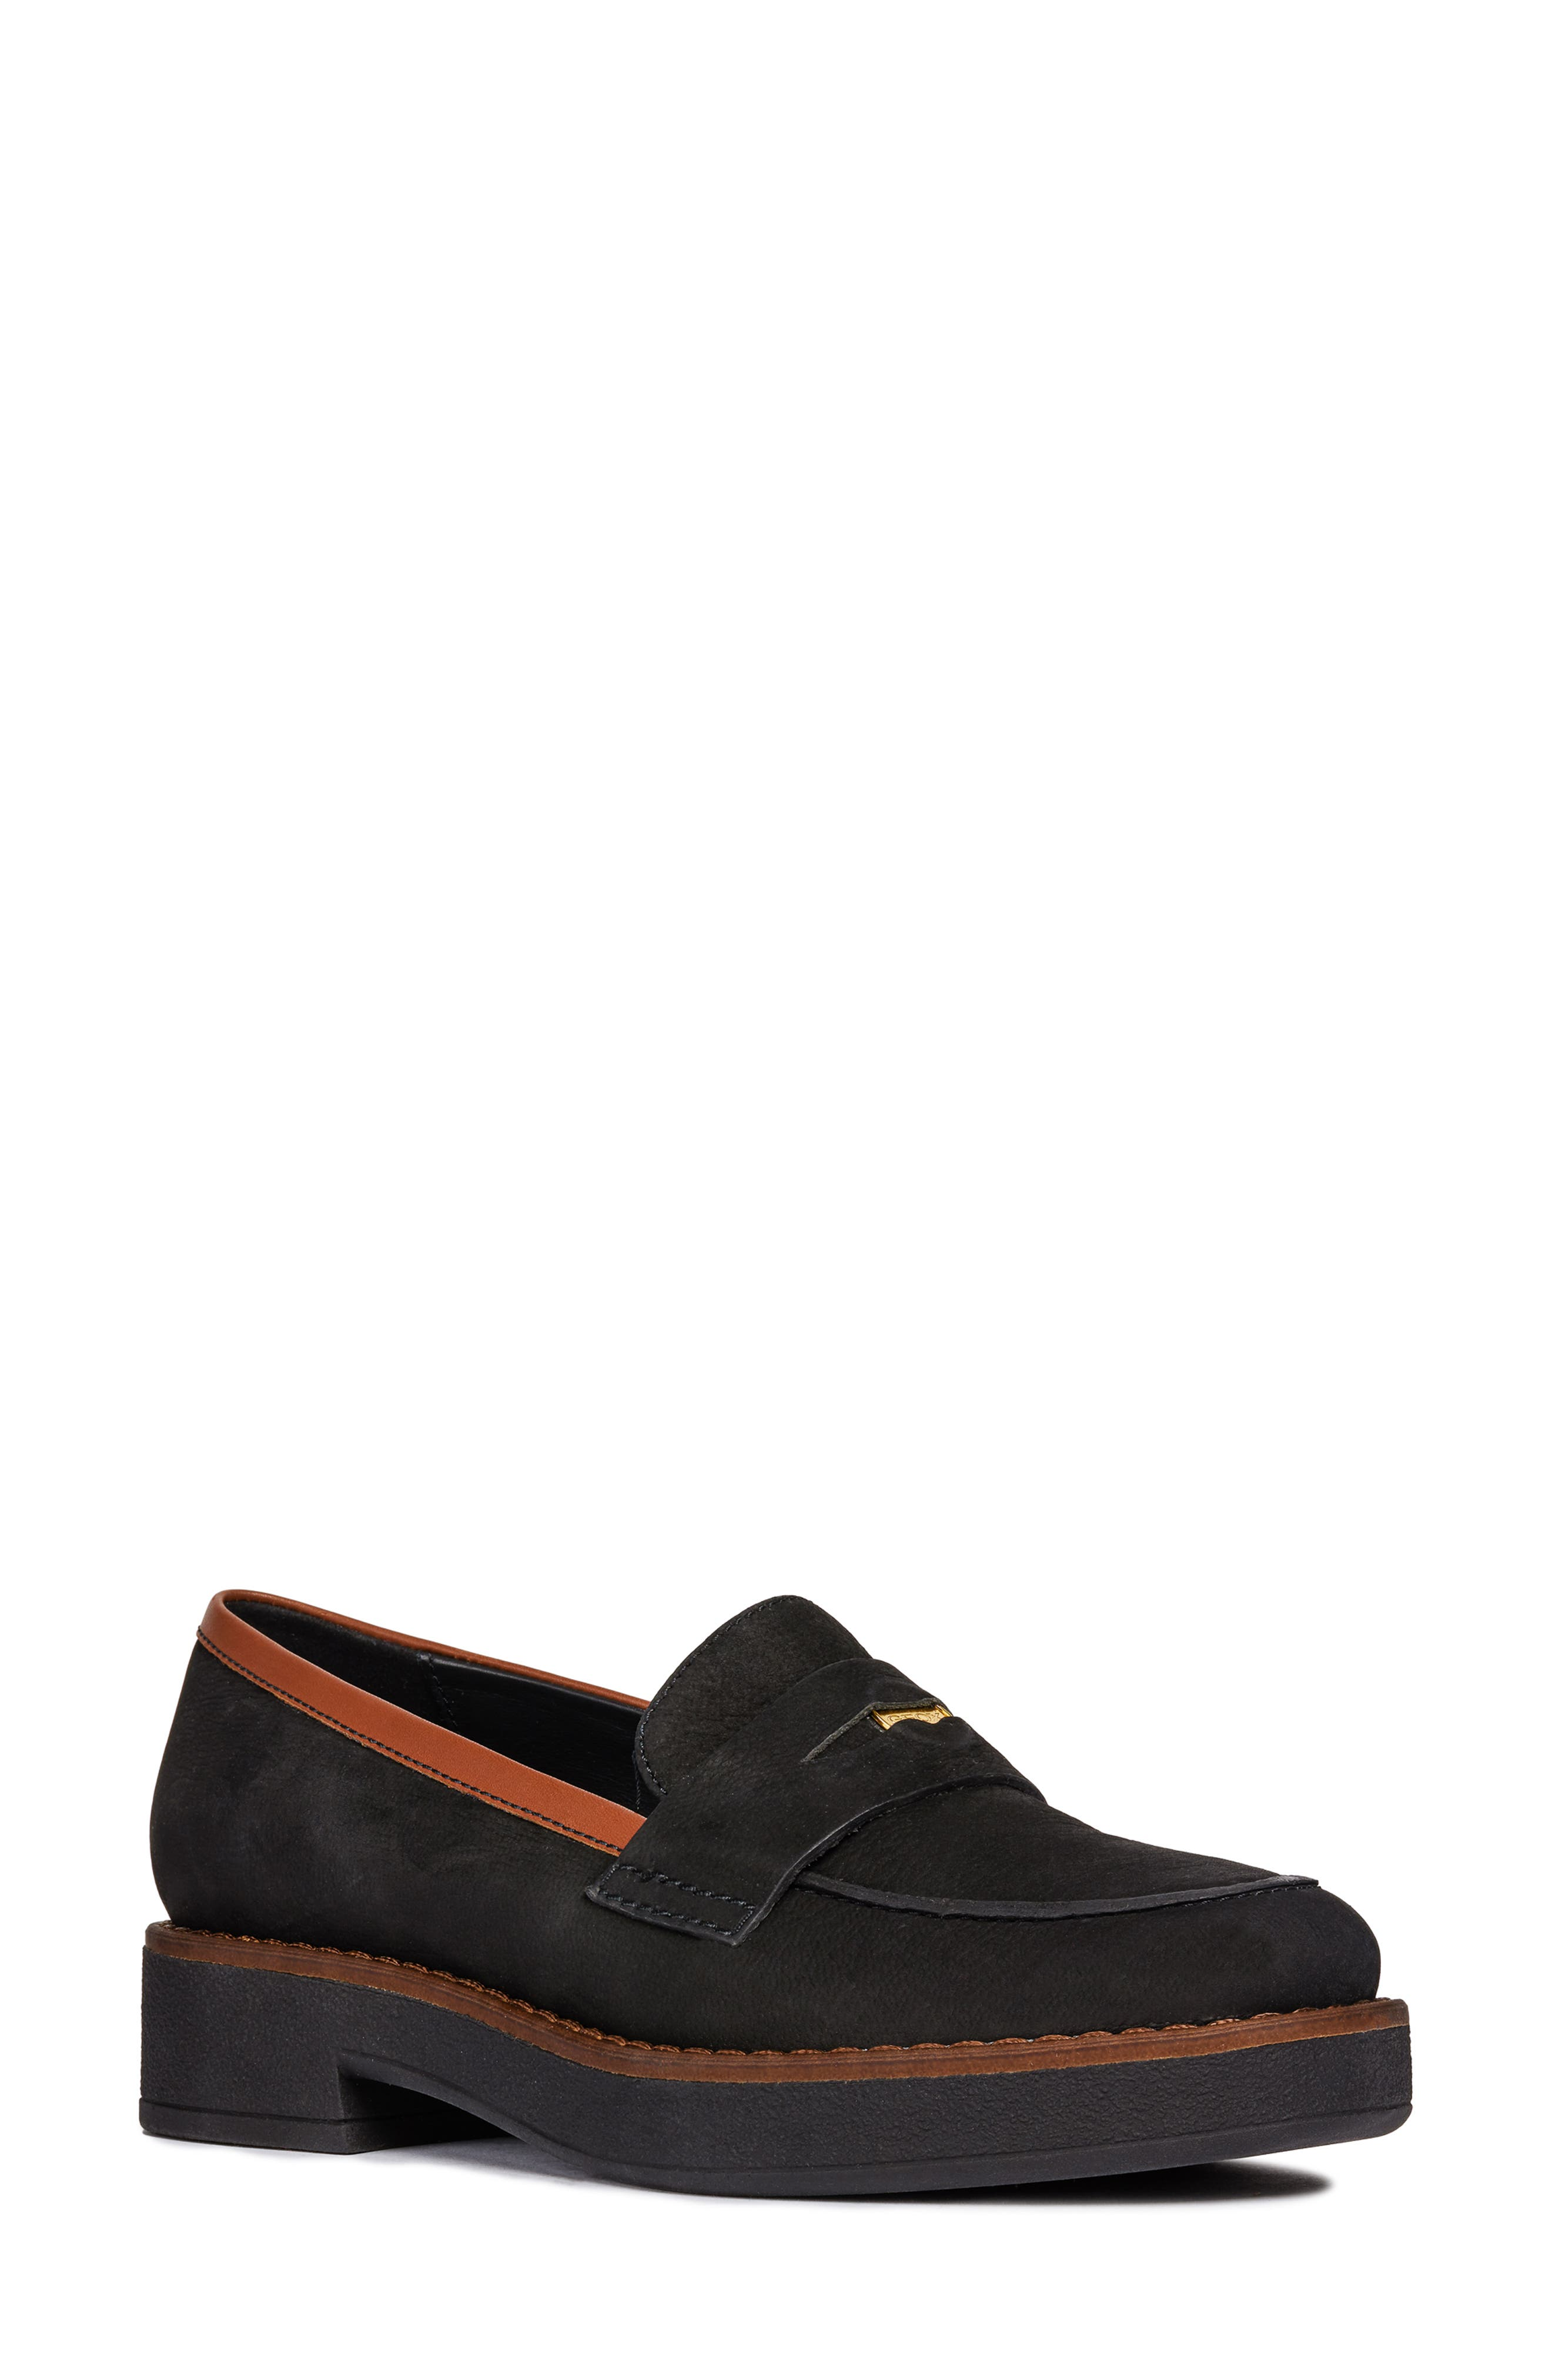 Adrya Loafer,                         Main,                         color, BLACK/ BROWN NUBUCK LEATHER